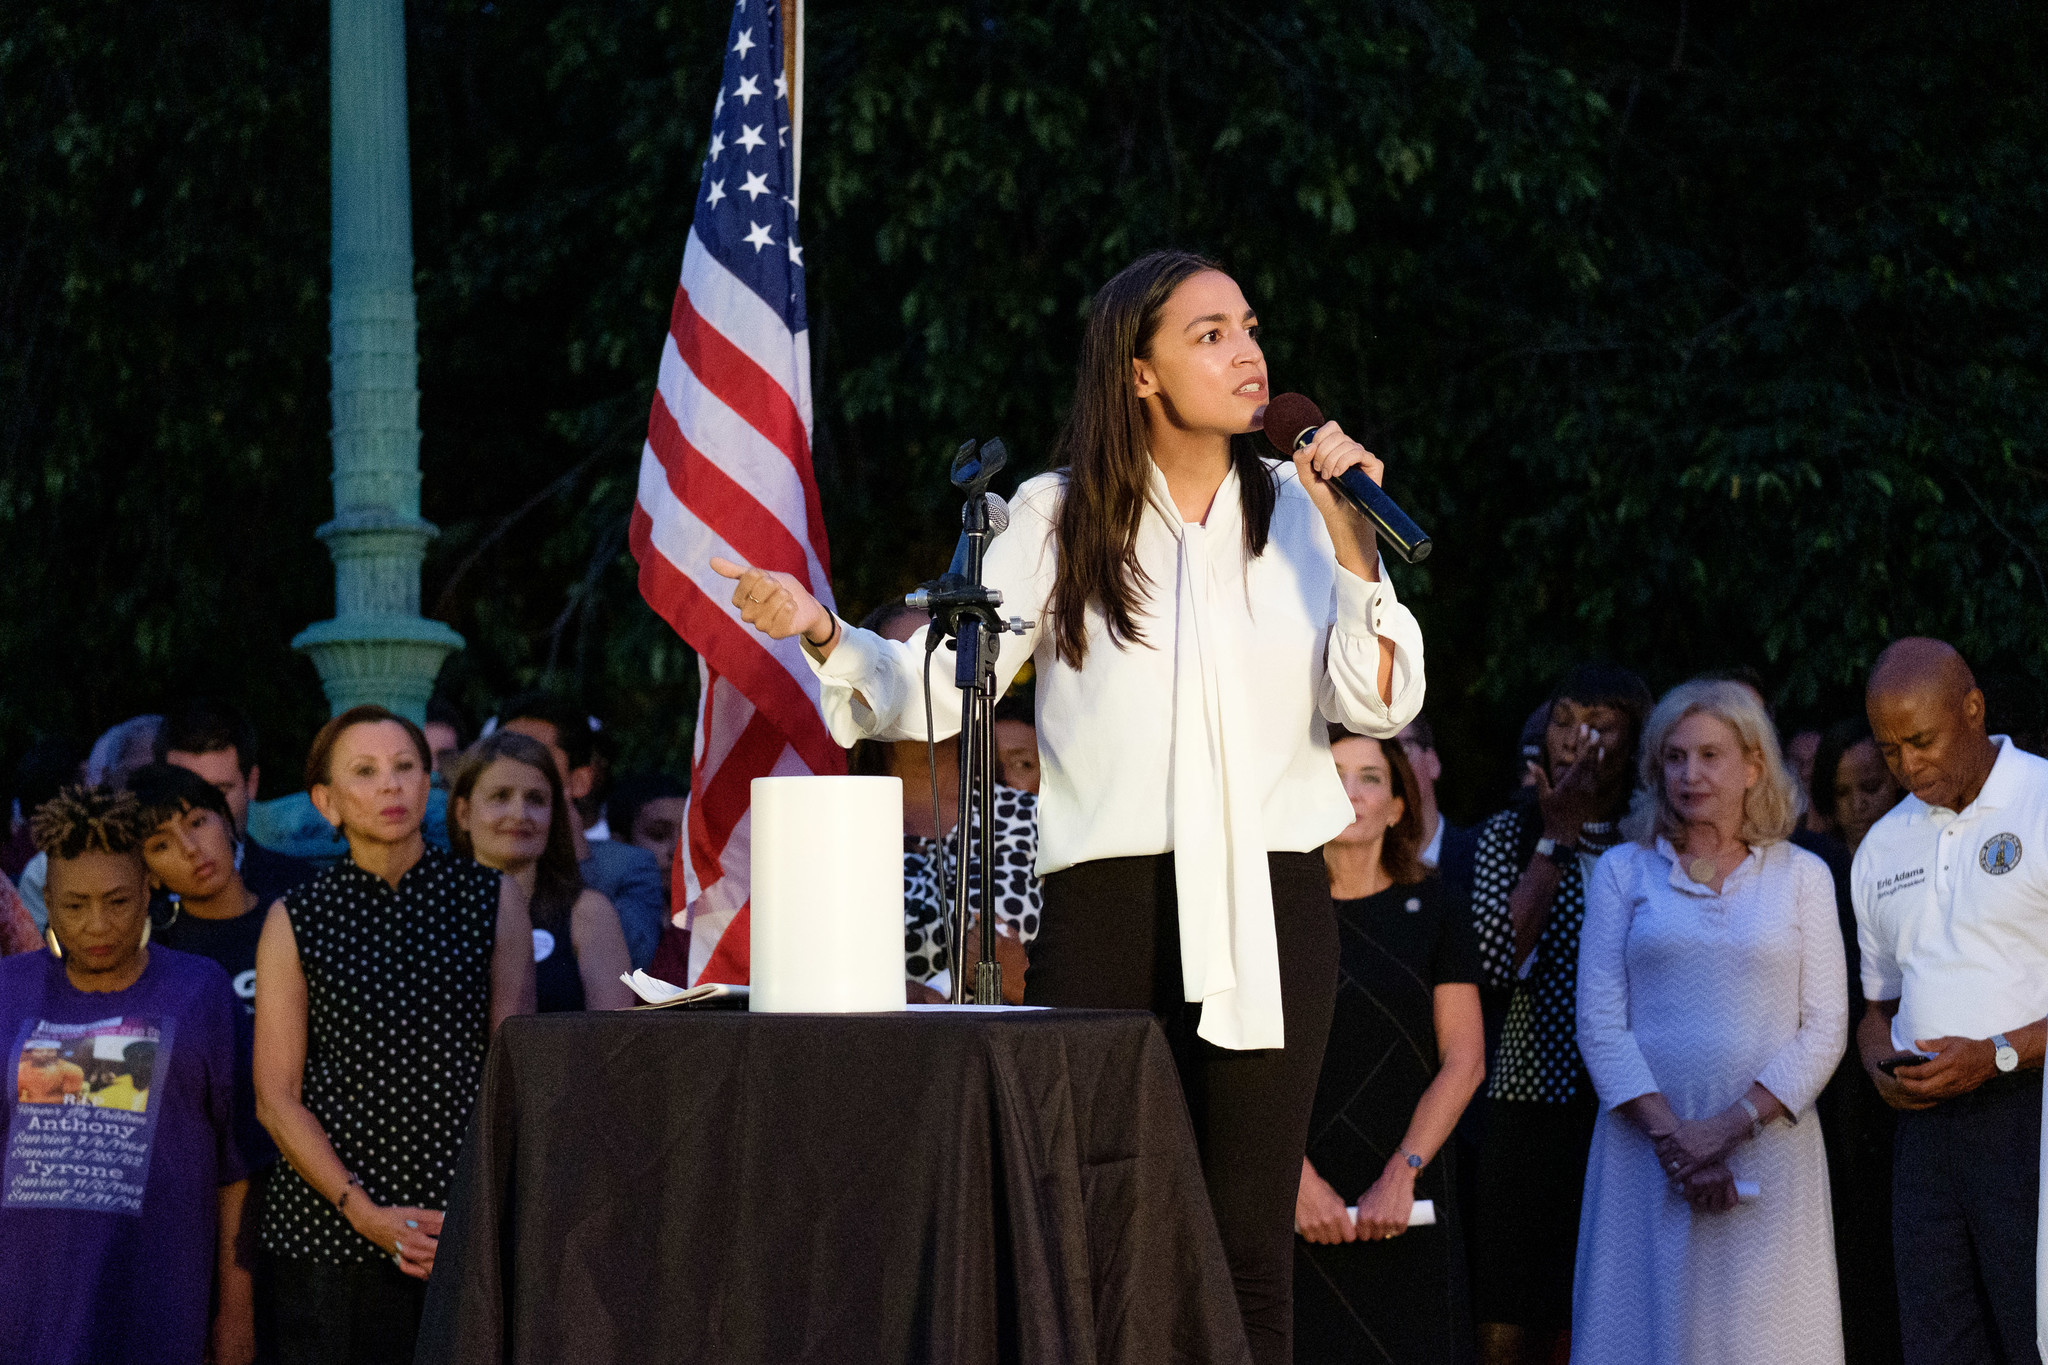 White supremacy an 'international terrorist problem,' Ocasio-Cortez says at vigil for Dayton, El Paso victims